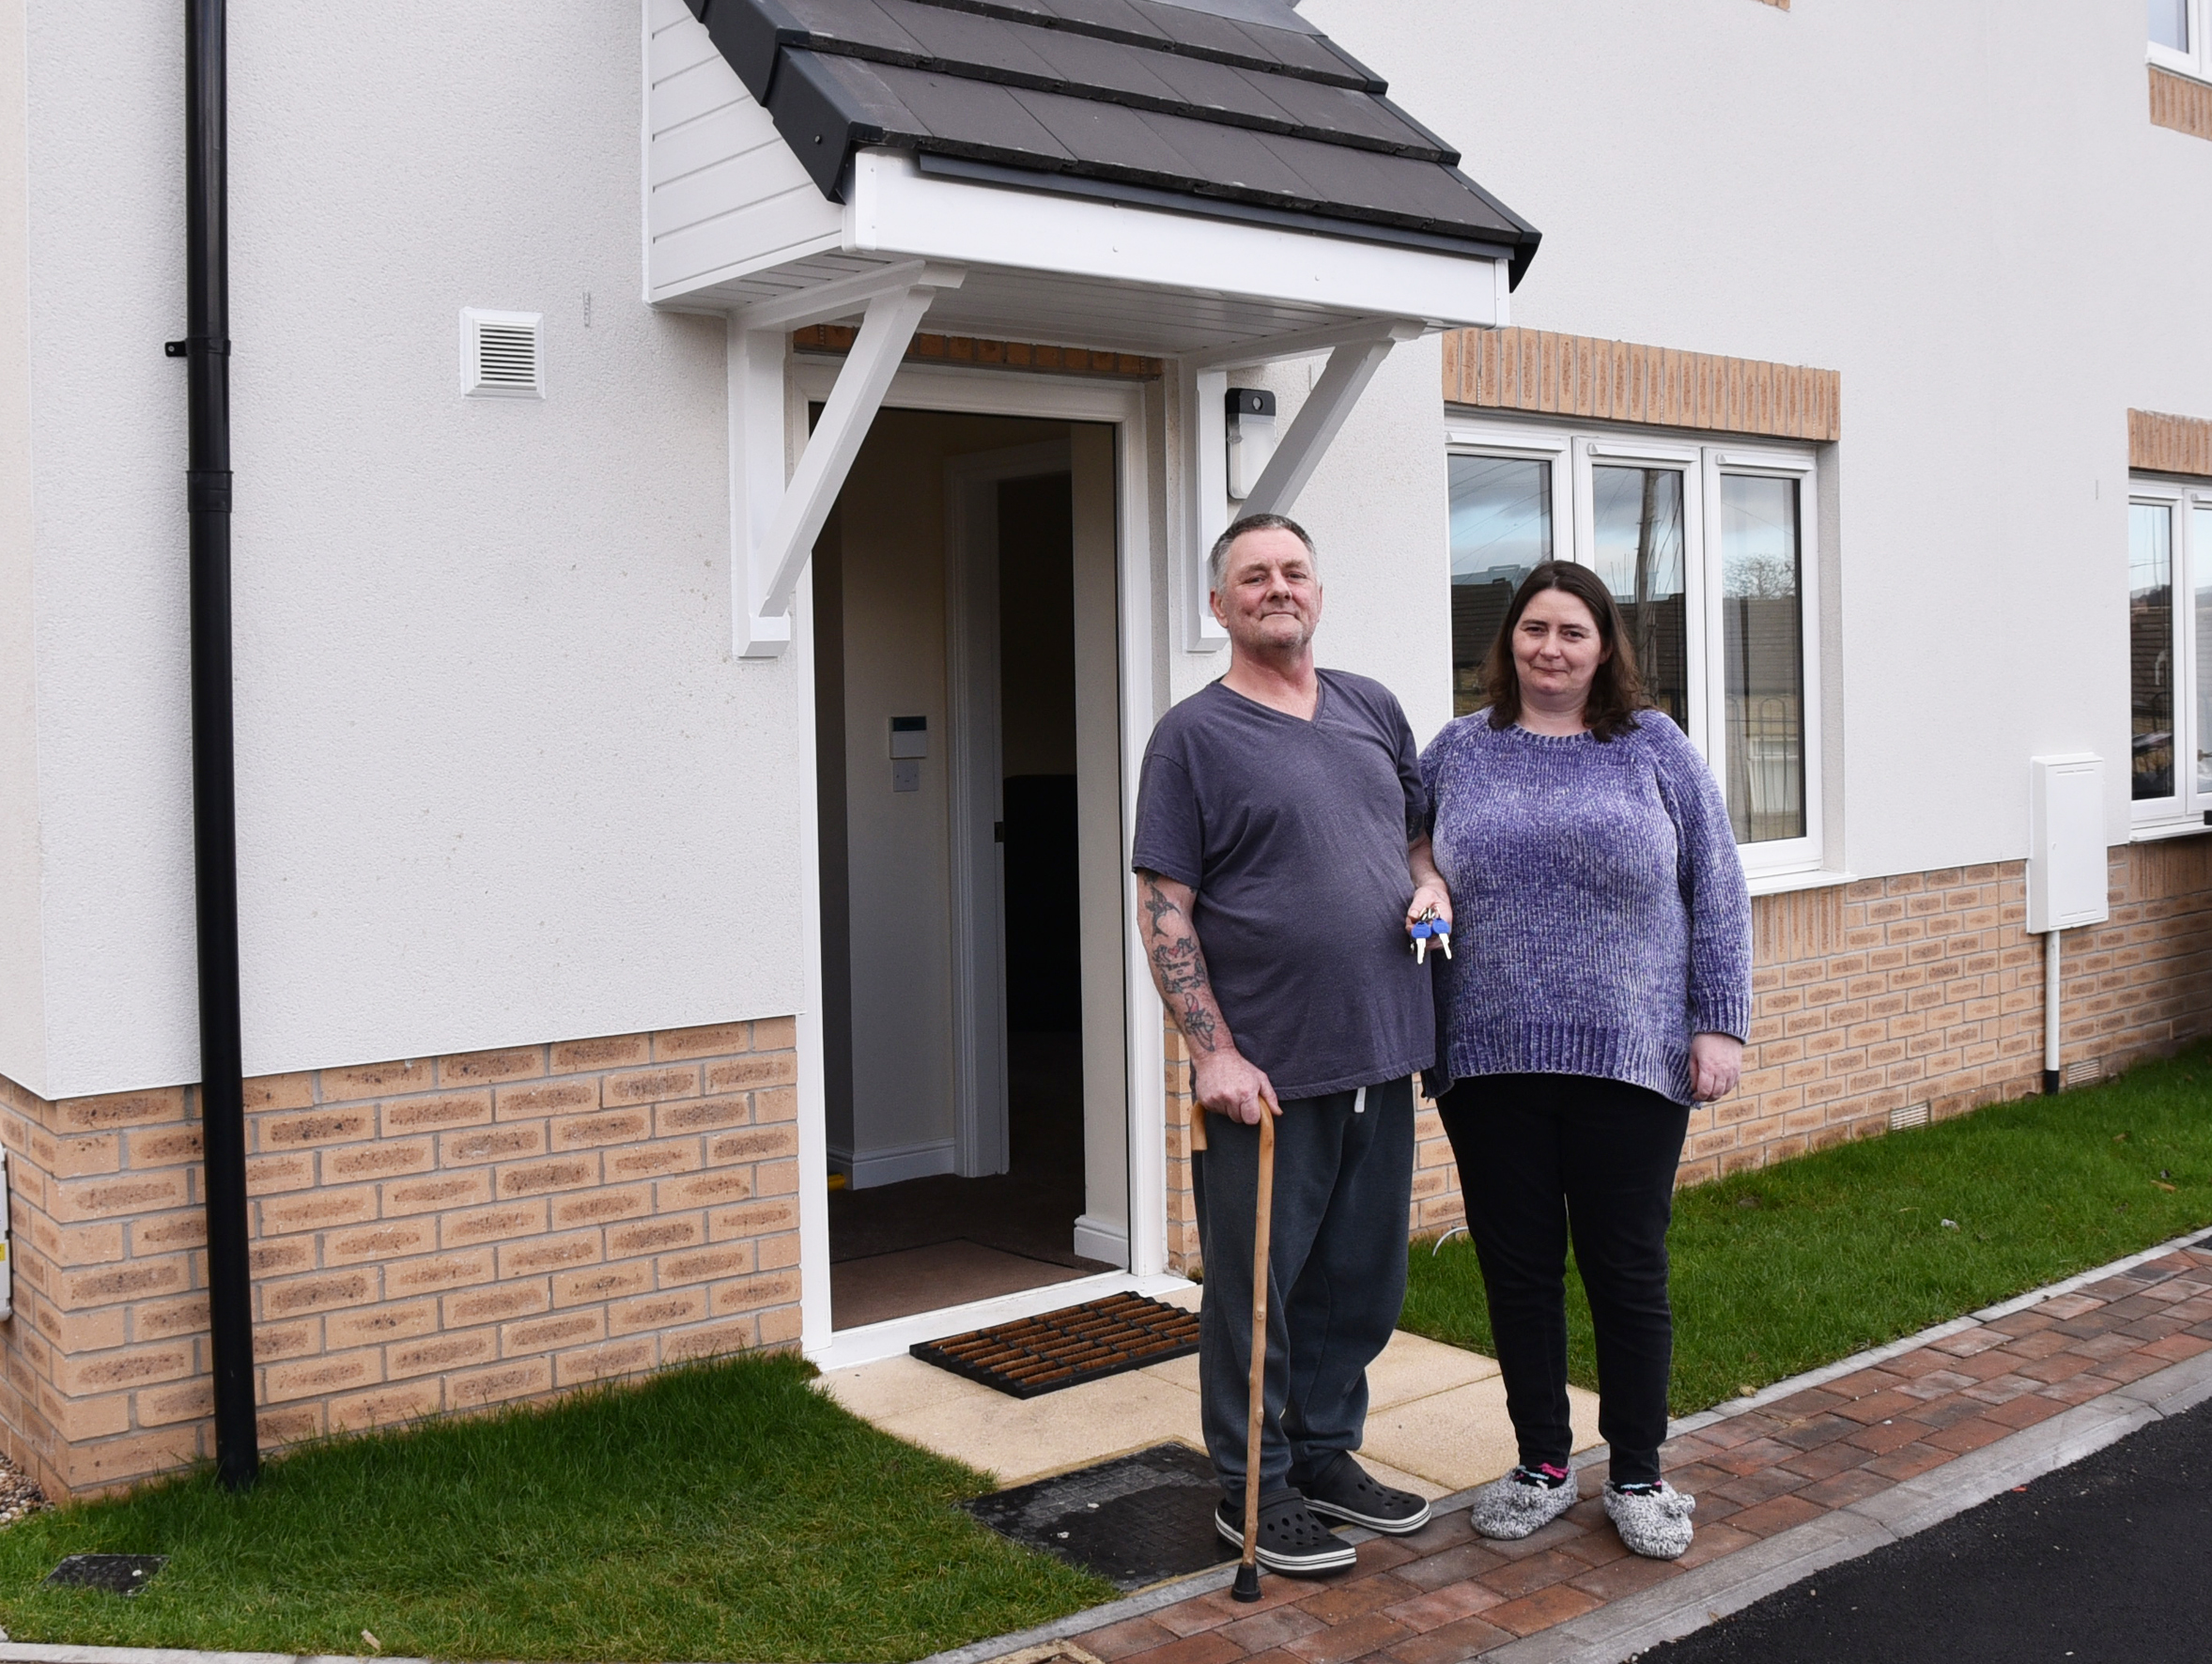 Affordable homes 'on track'